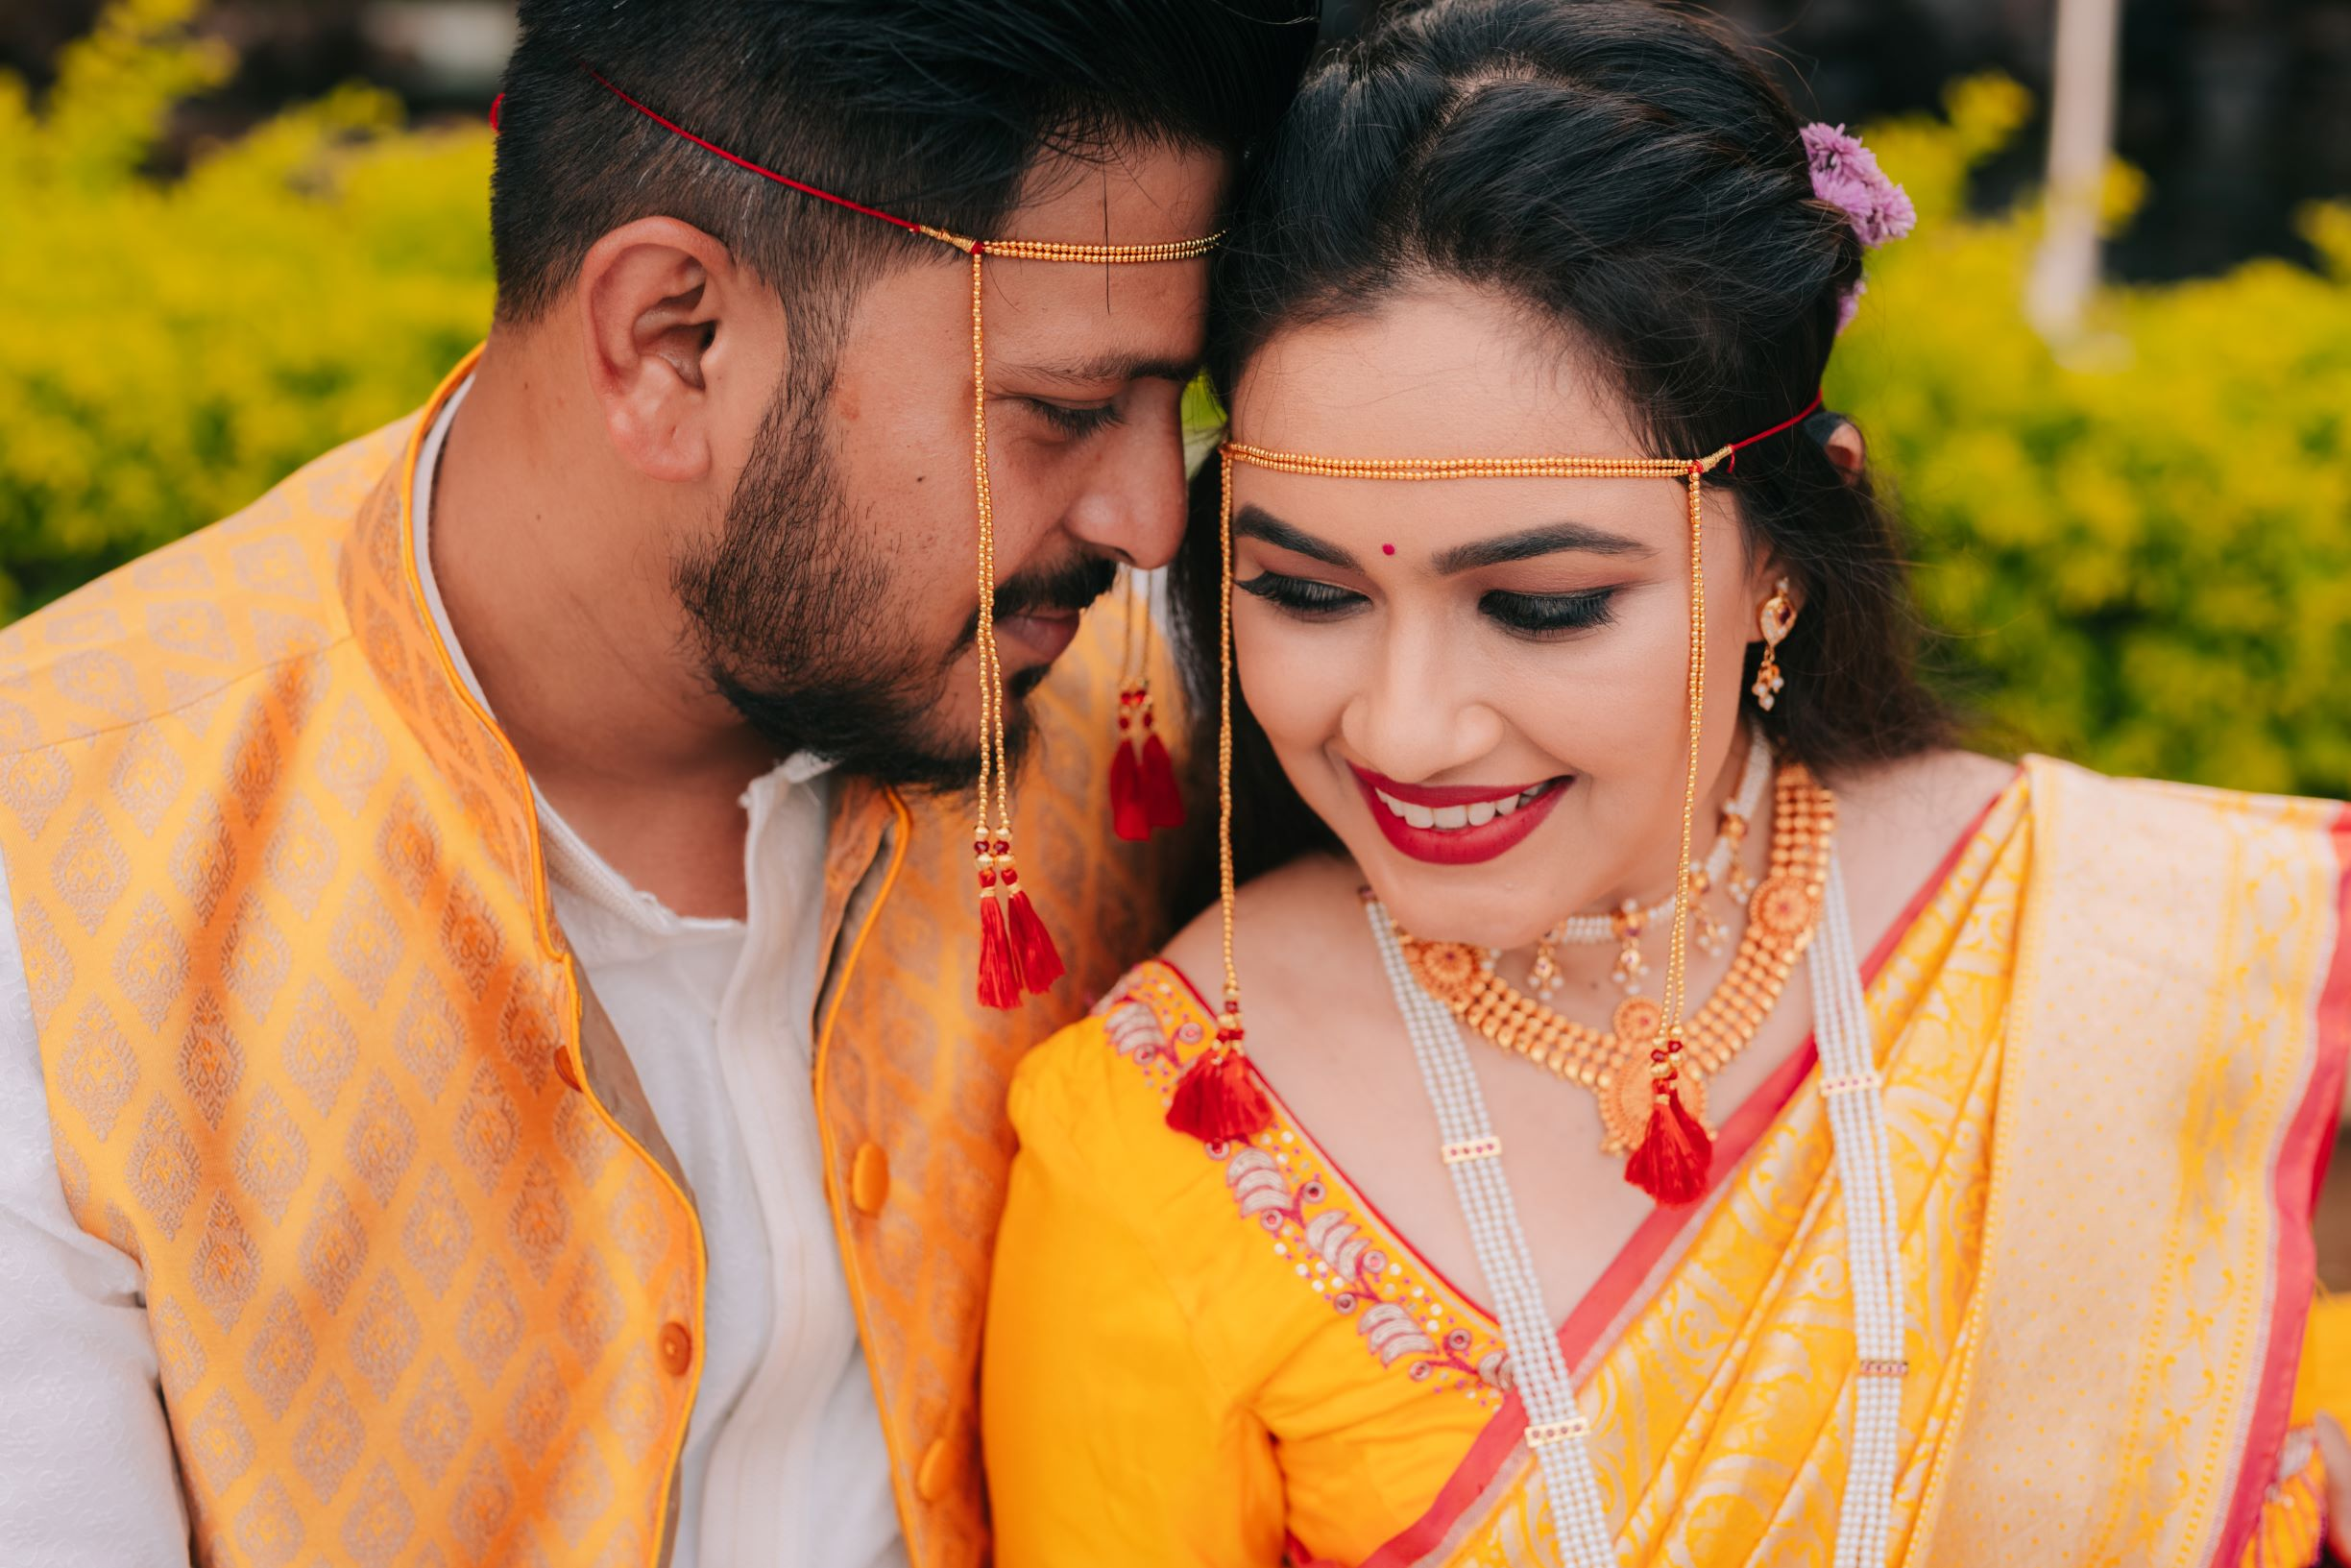 maharashtrian couple in coordinating yellow outfits